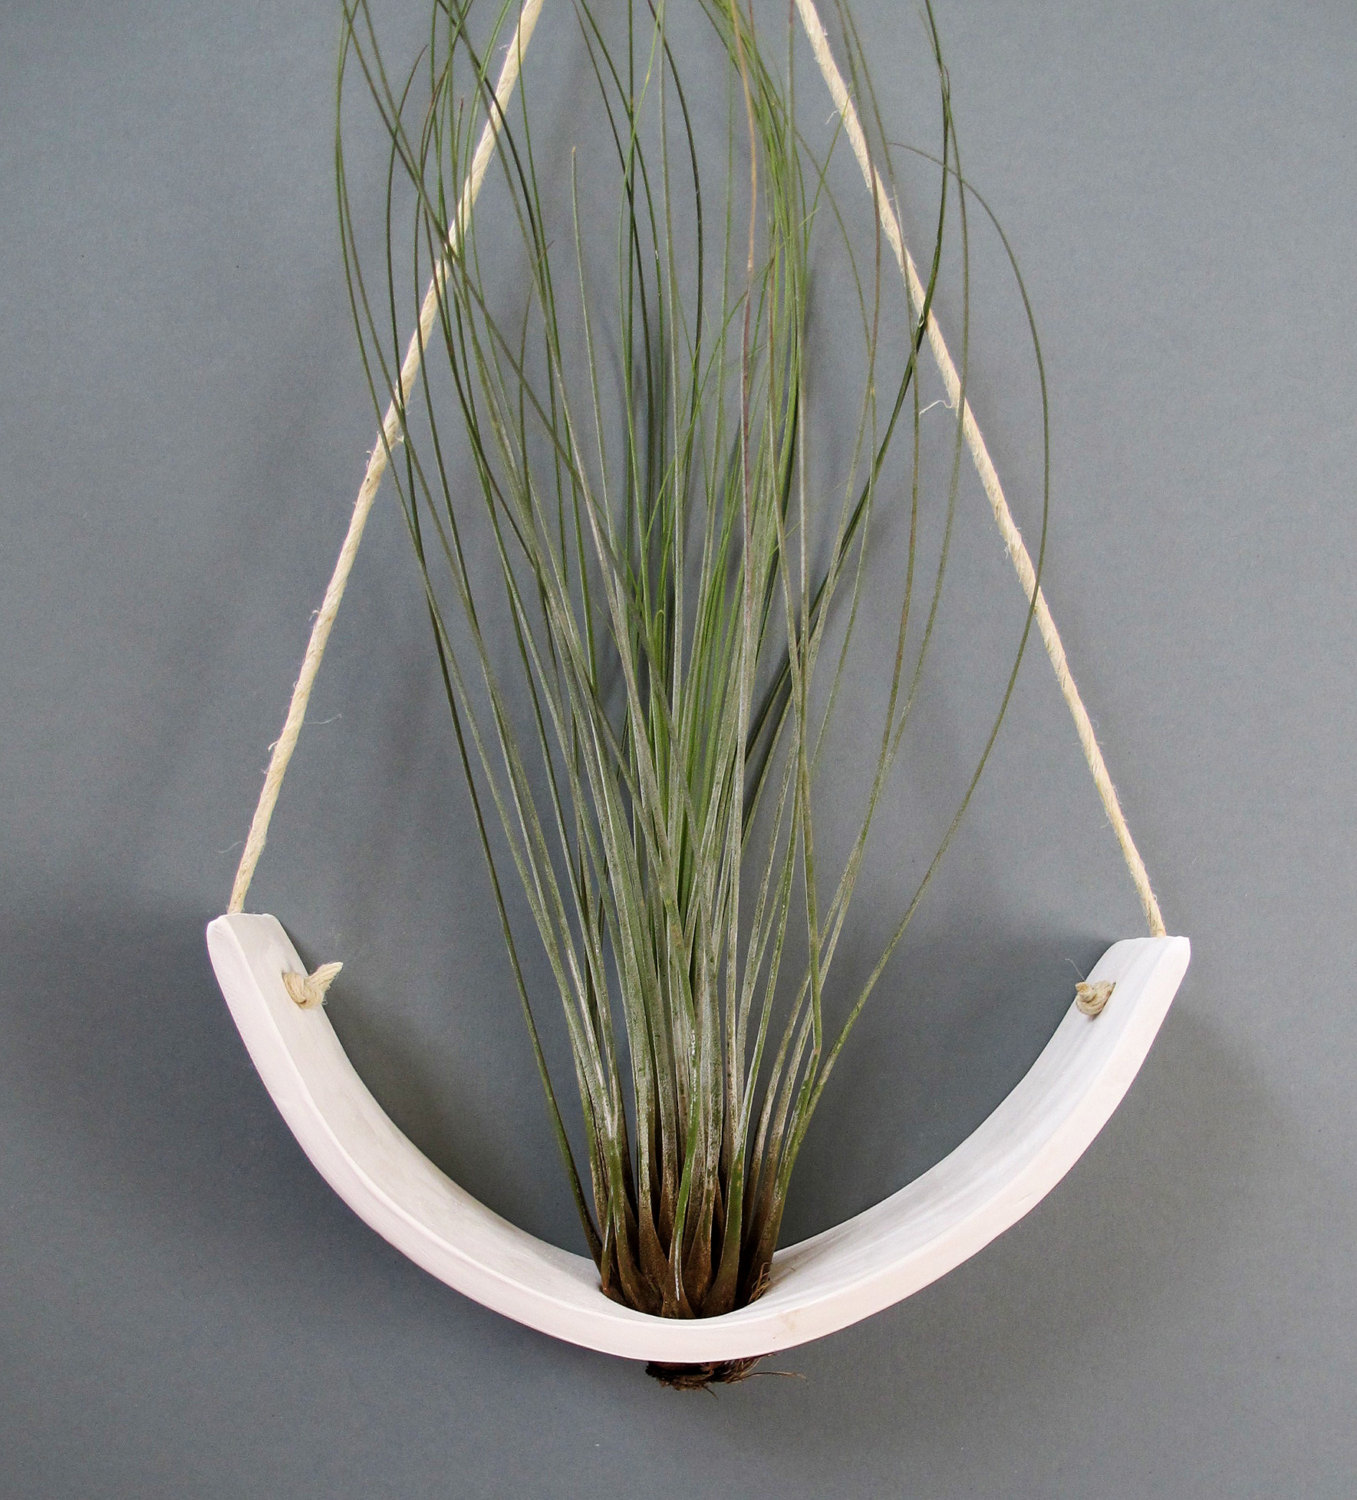 Hanging air plant cradle from Etsy shop mudpuppy